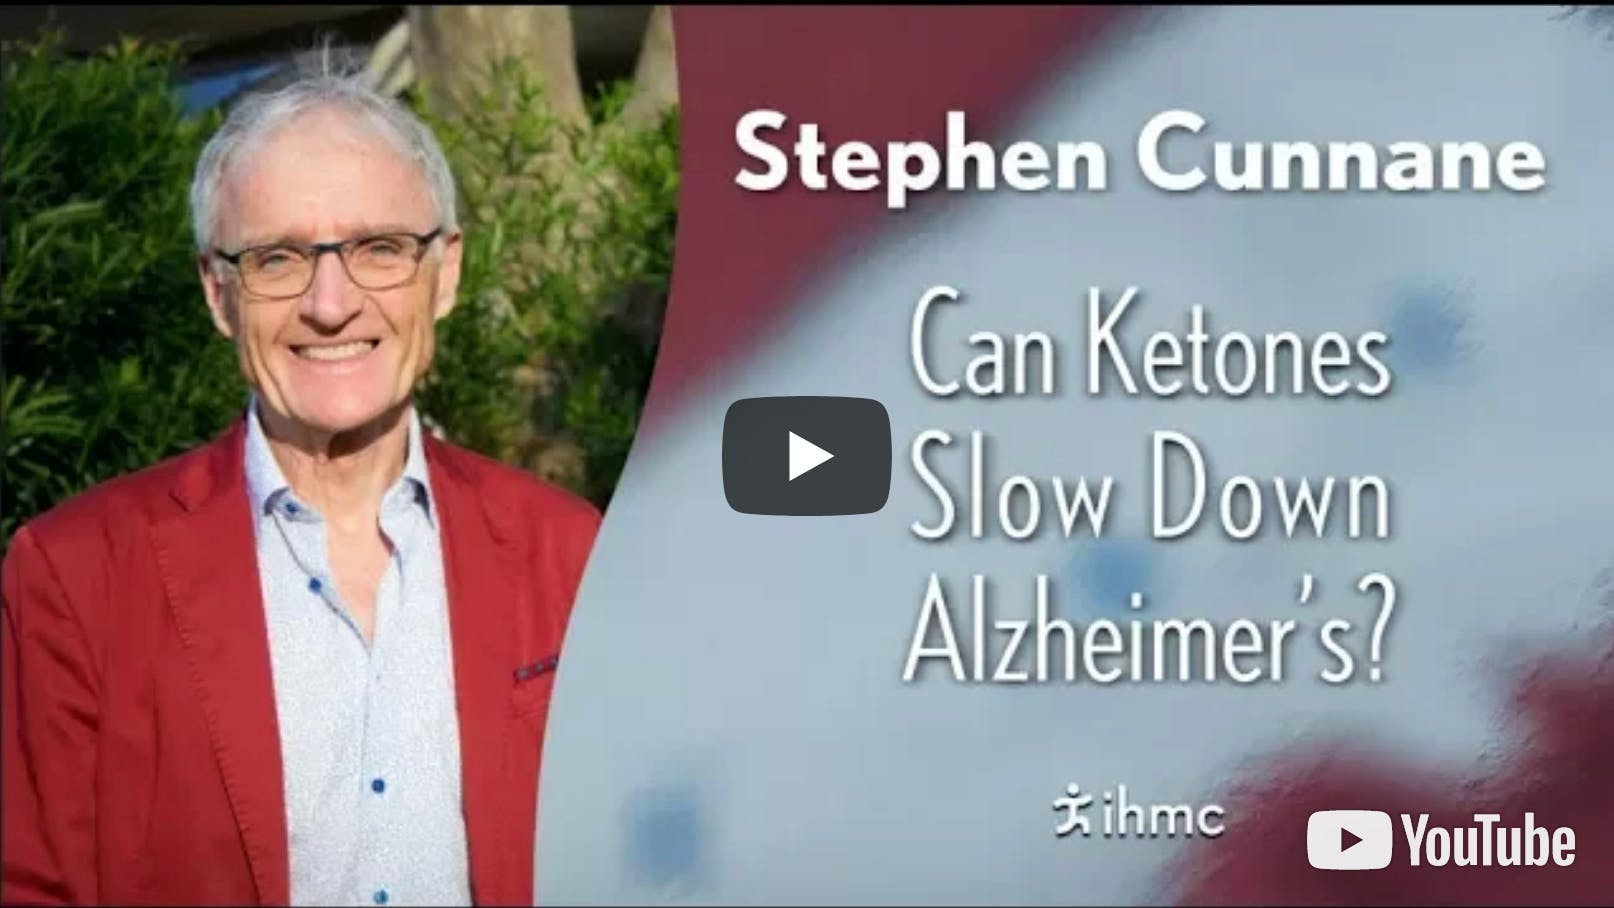 Can ketones slow down the progression of Alzheimer's?